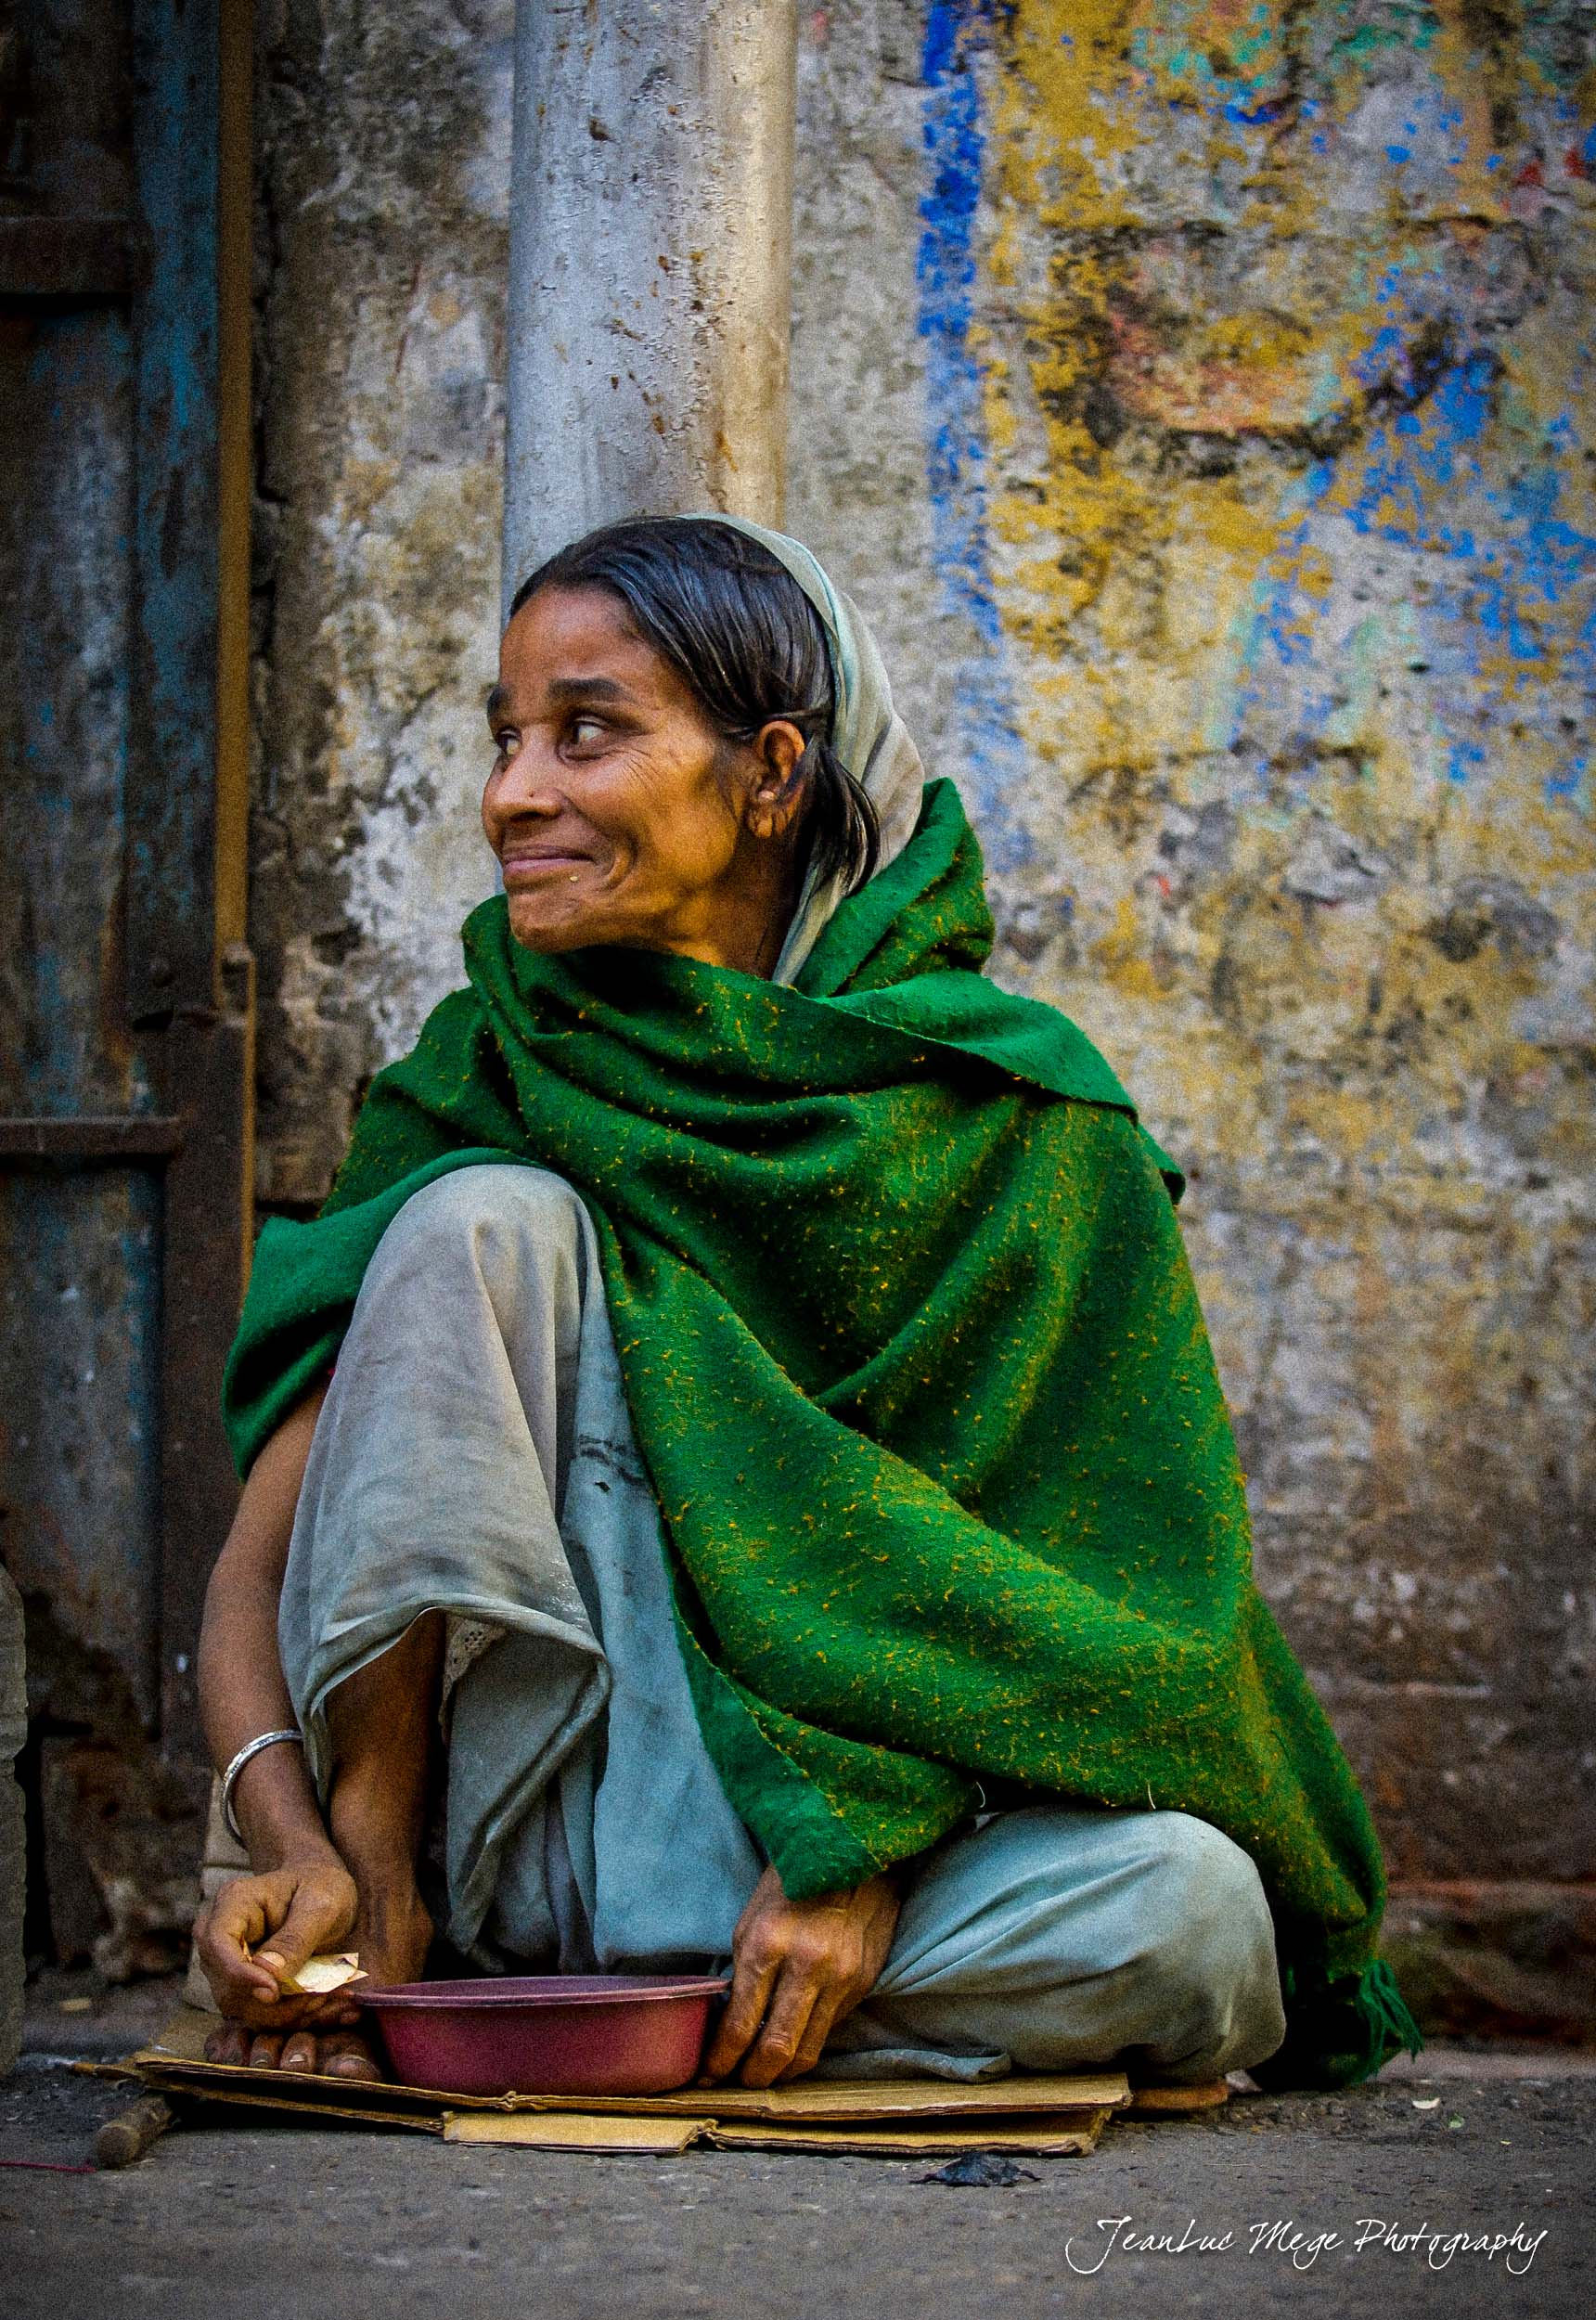 Streets of India J4-5 ©jeanlucmege-6988.jpg